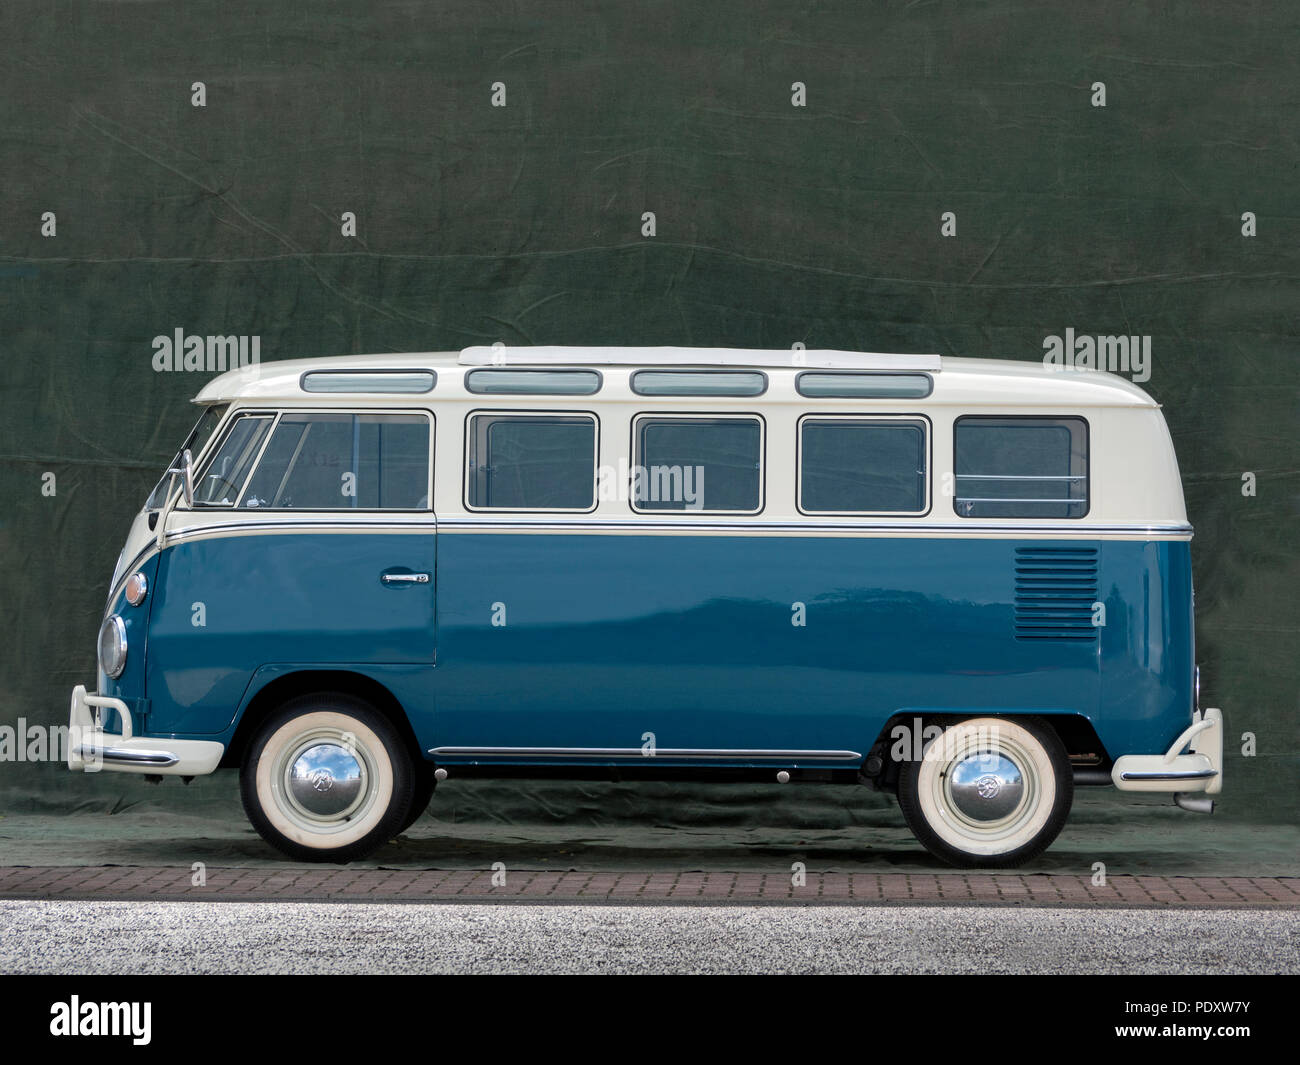 1965 vw t1 21 window micro bus samba stock photo. Black Bedroom Furniture Sets. Home Design Ideas